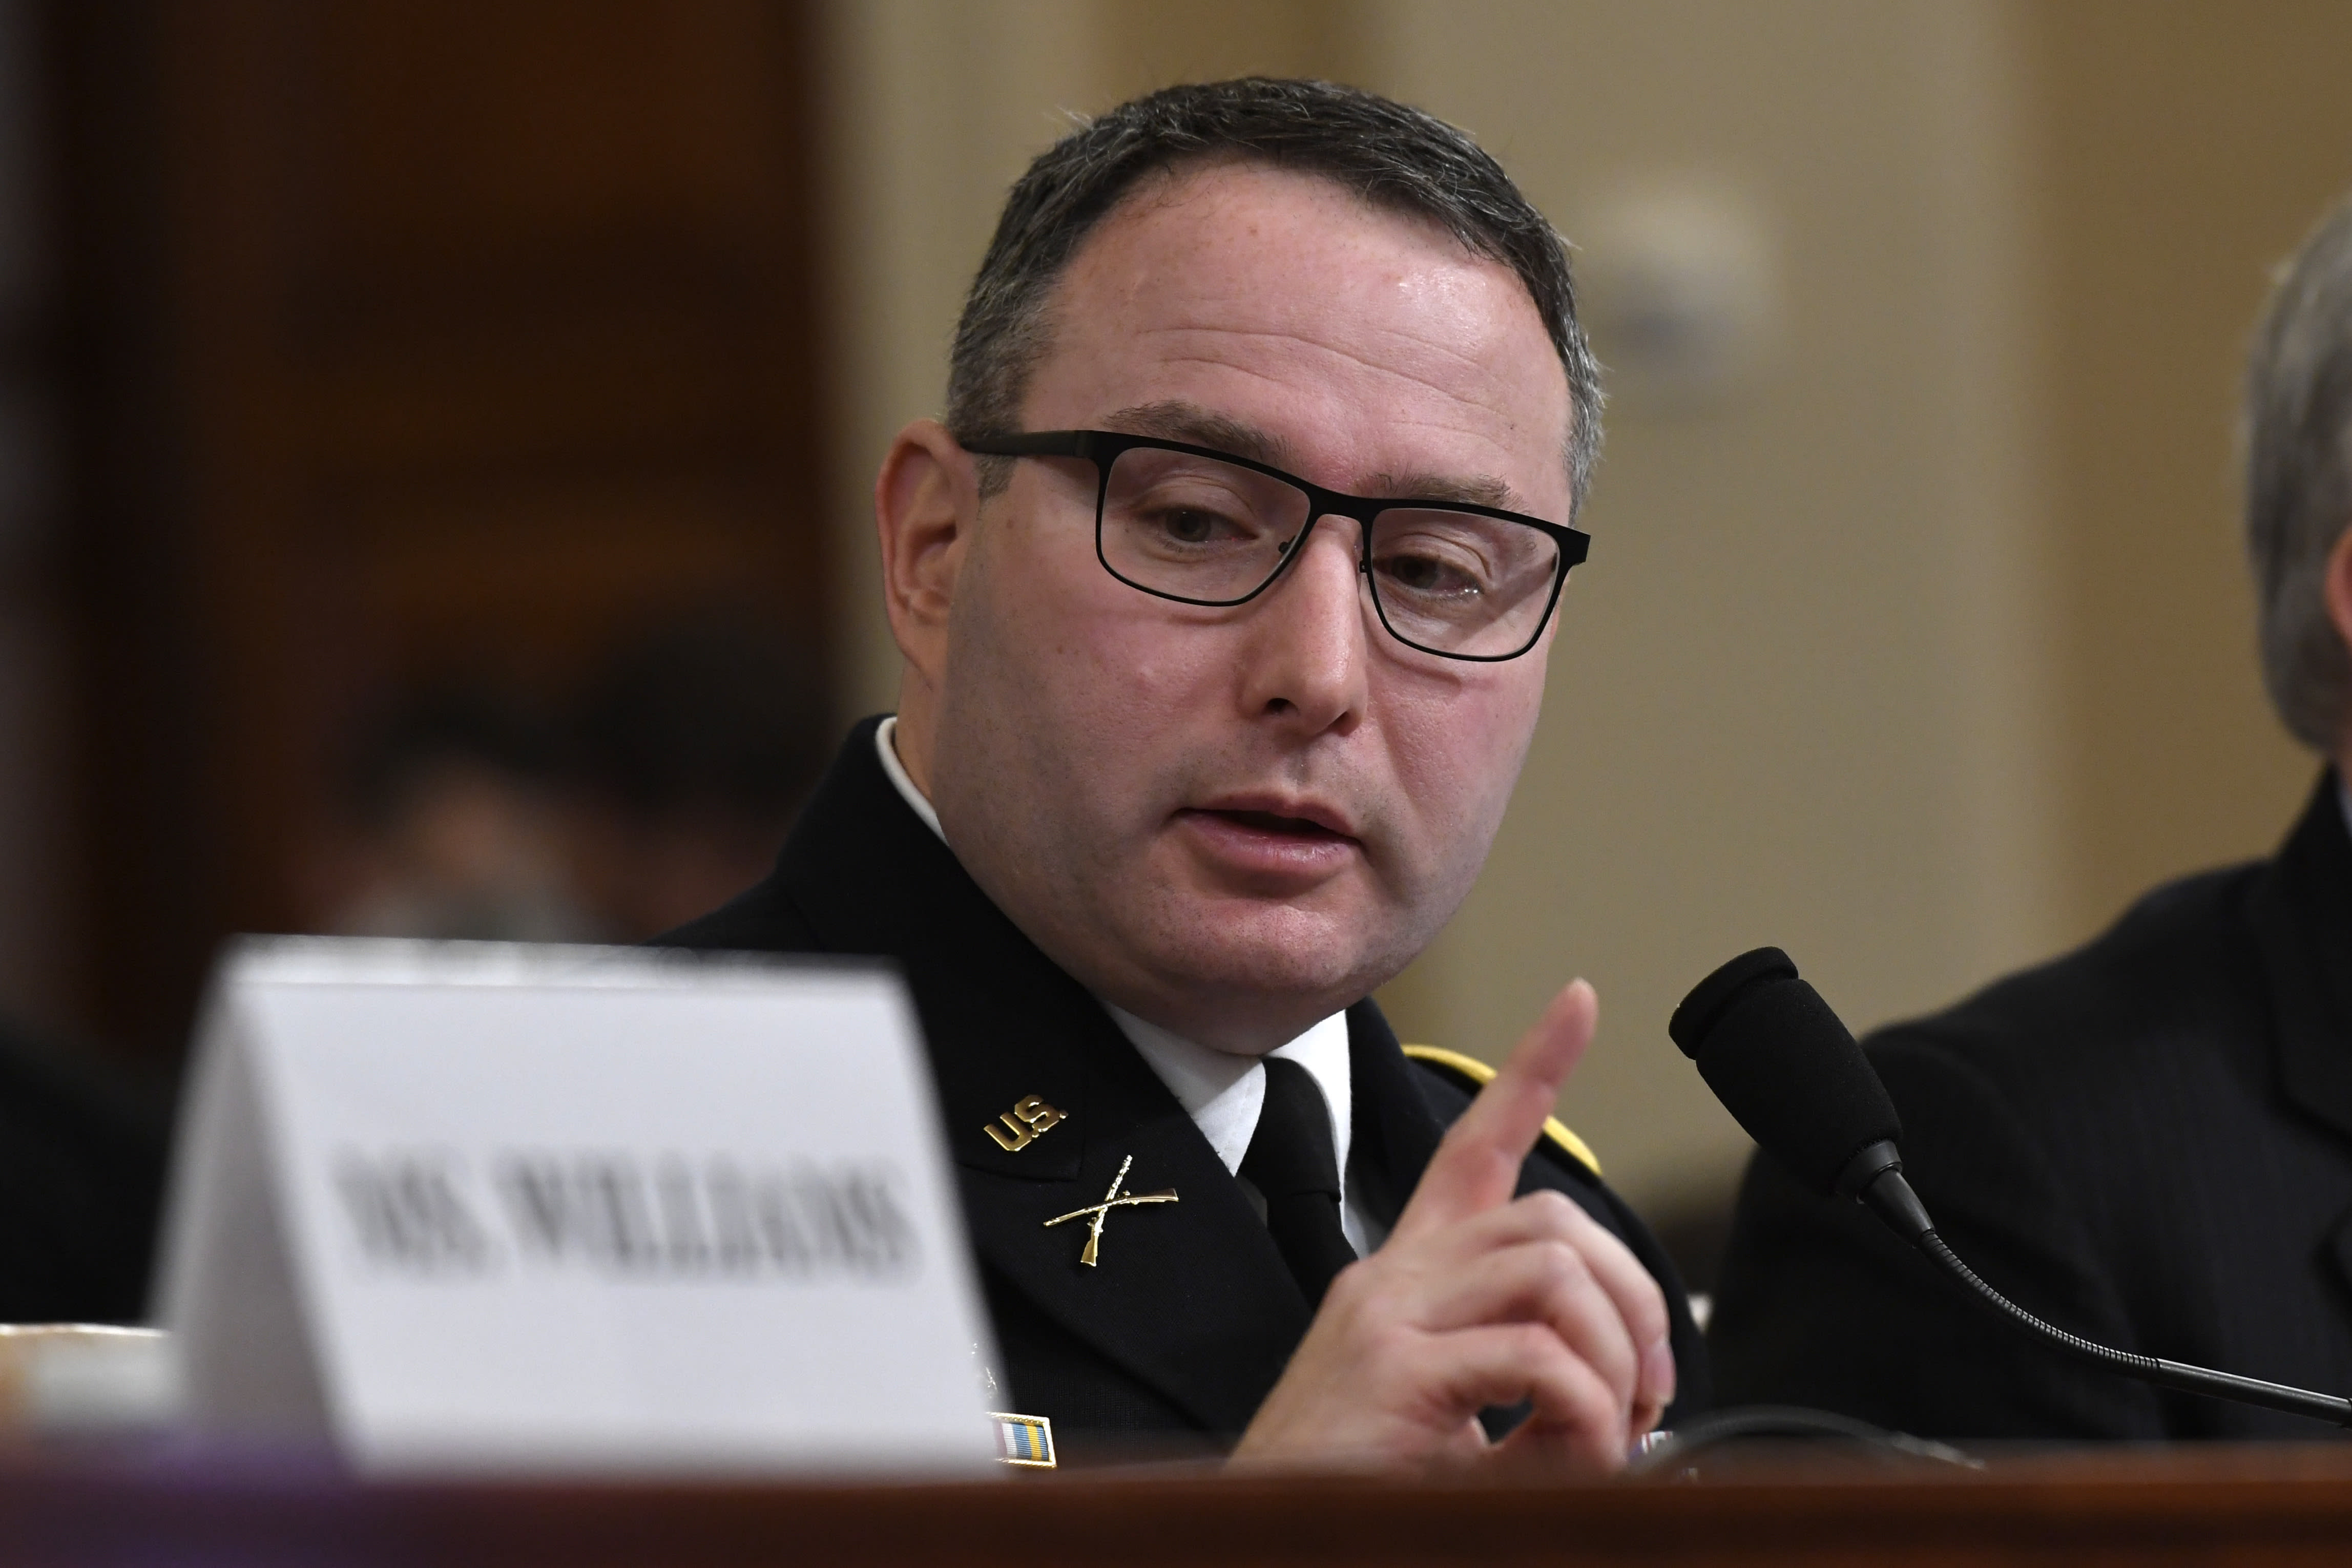 National Security Council aide Lt. Col. Alexander Vindman testifies before the House Intelligence Committee on Capitol Hill in Washington, Tuesday, Nov. 19, 2019, during a public impeachment hearing of President Donald Trump's efforts to tie U.S. aid for Ukraine to investigations of his political opponents. (AP Photo/Susan Walsh)